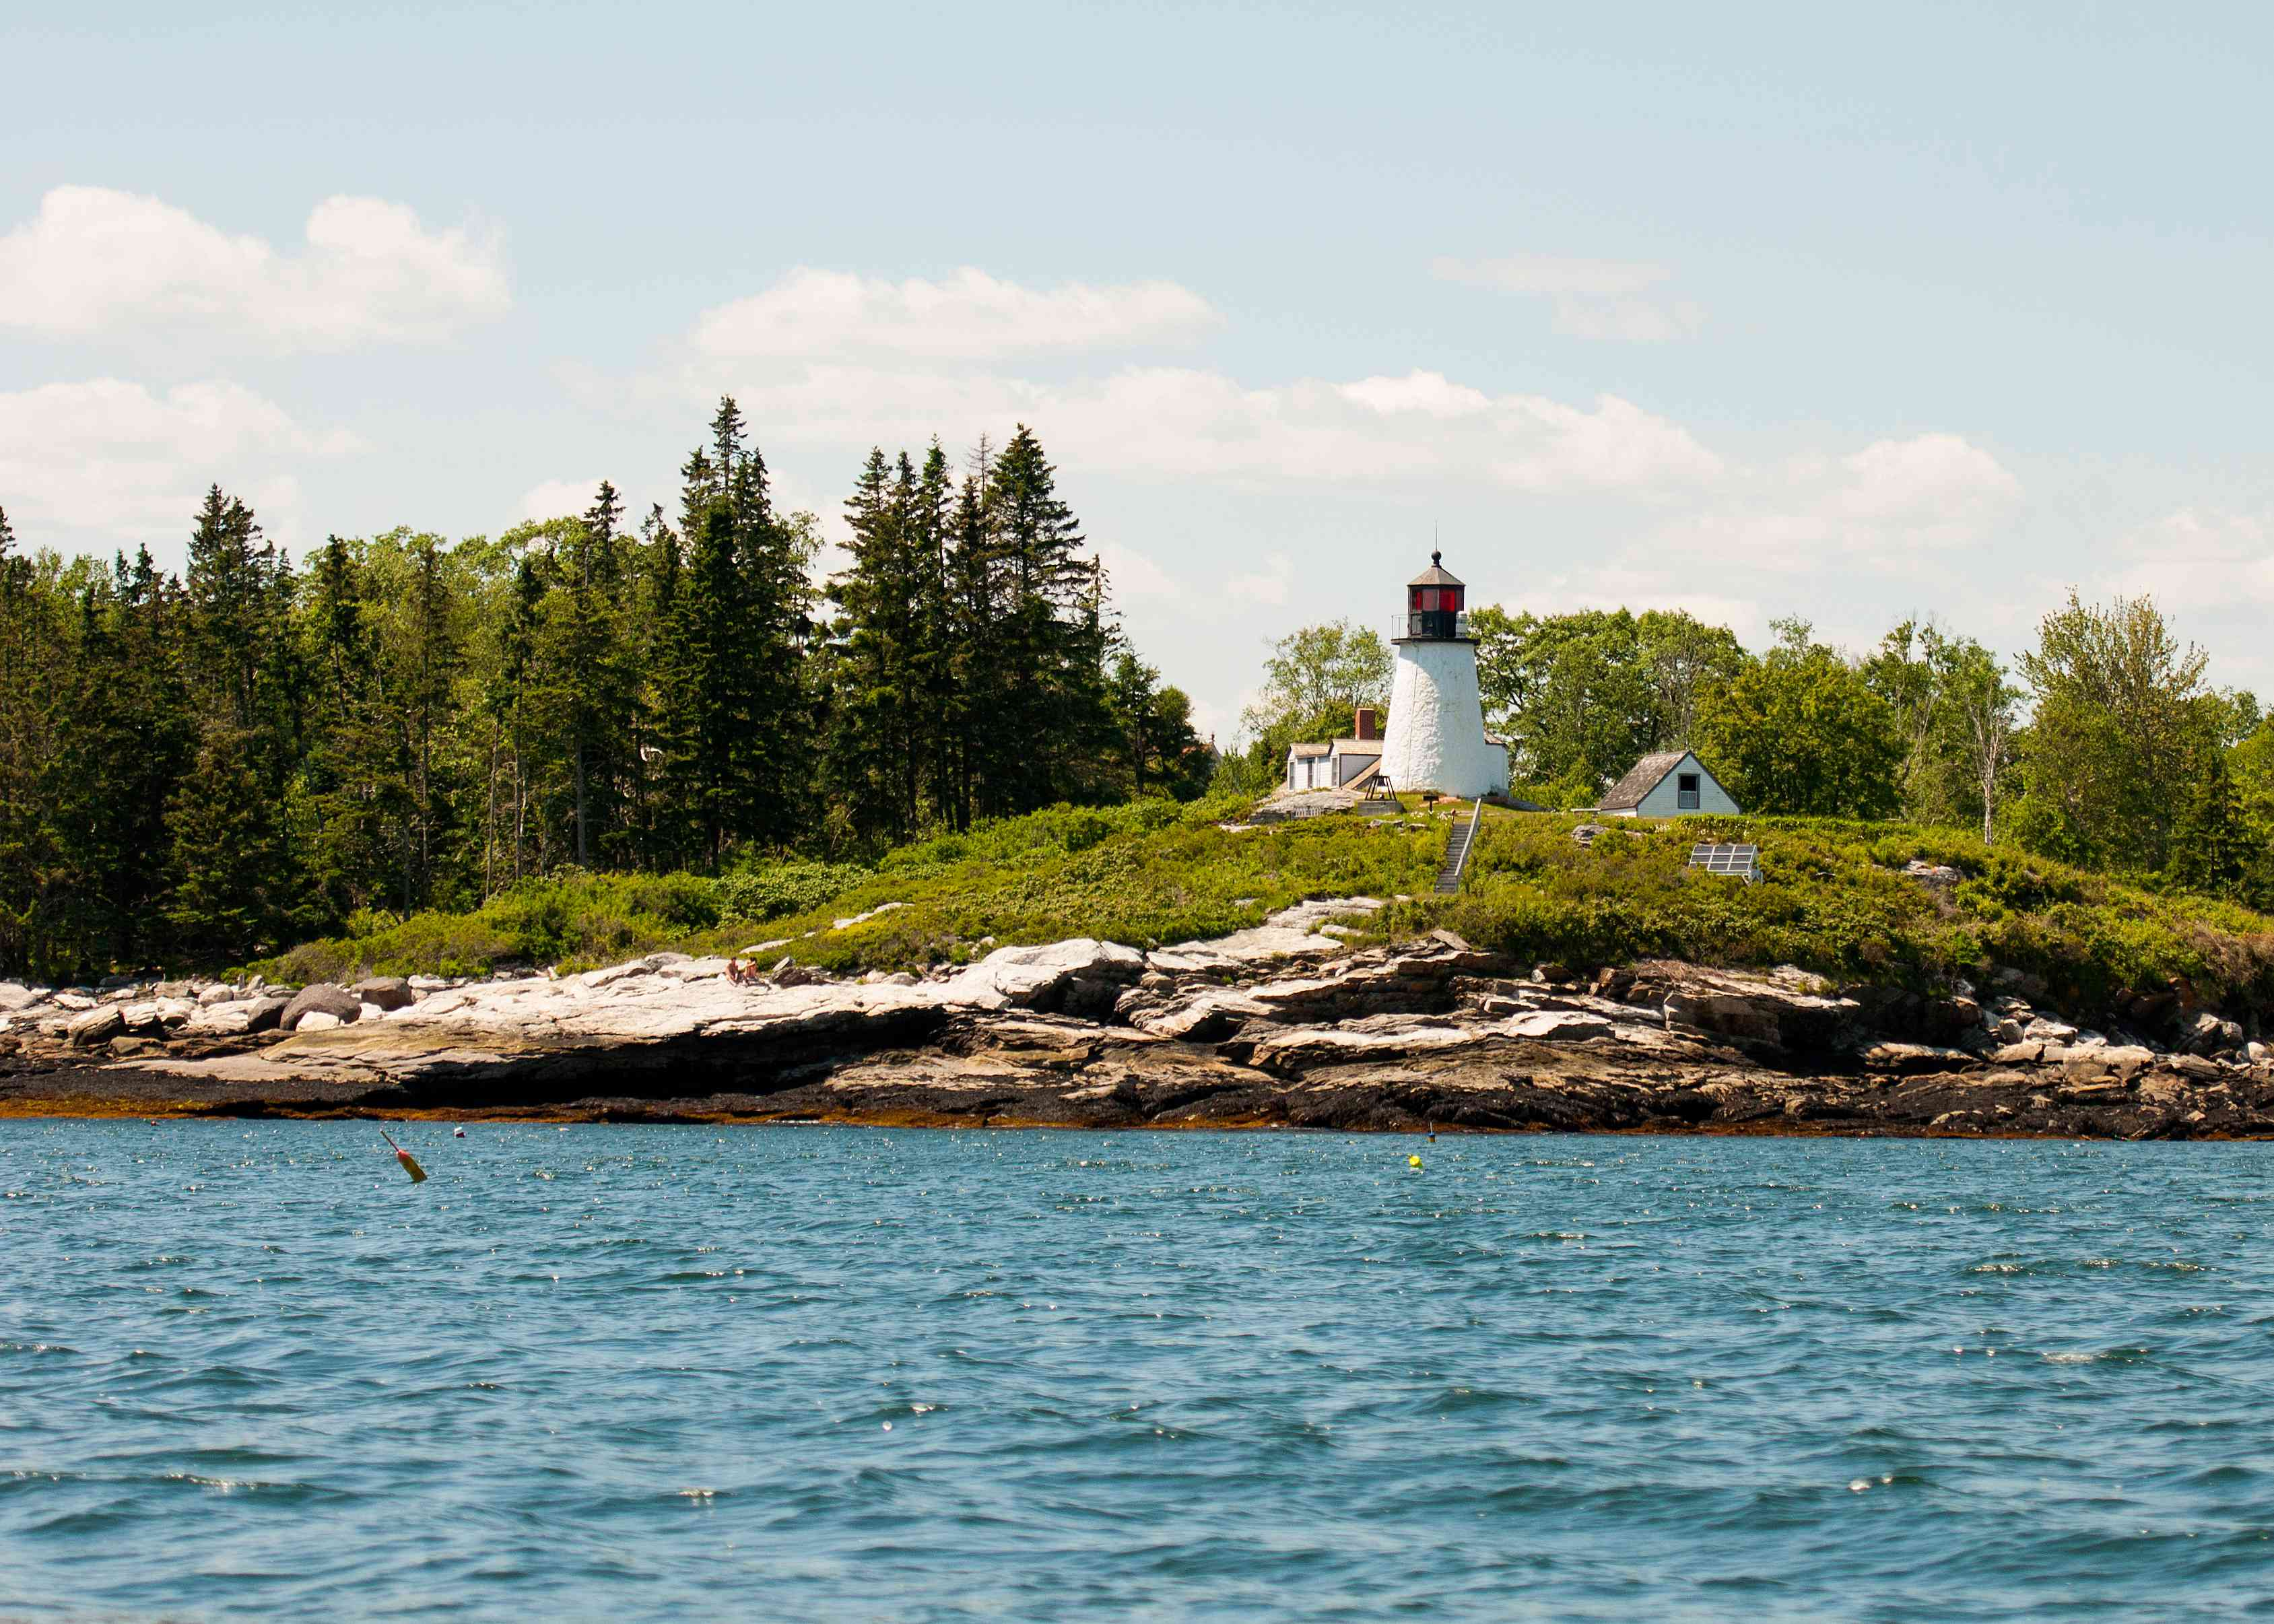 view of Burnt Island Lighthouse from the water